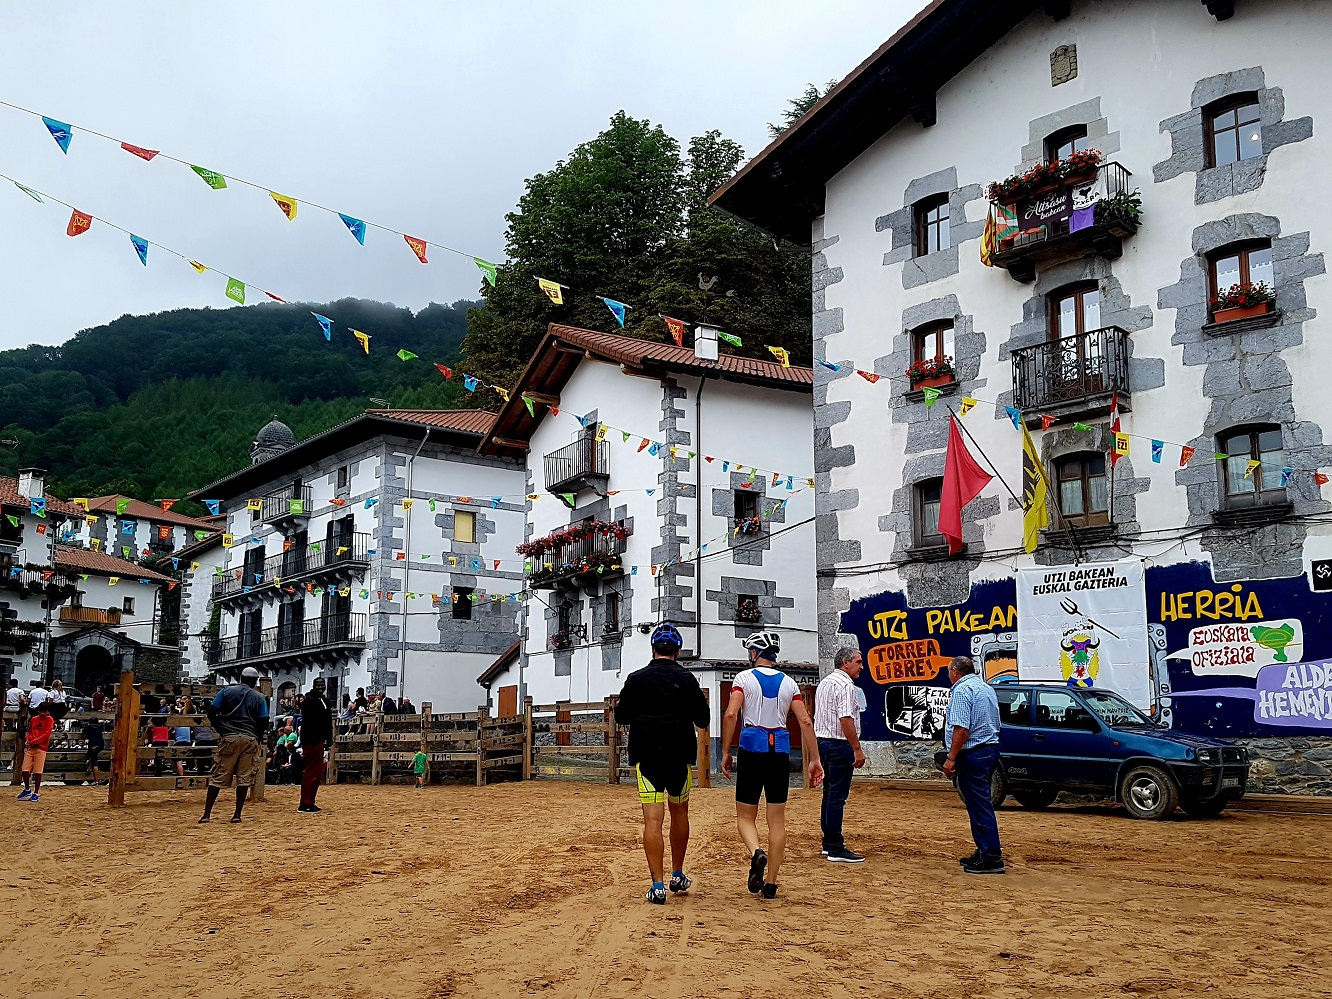 BIKING ROUTES OUT OF PAMPLONA